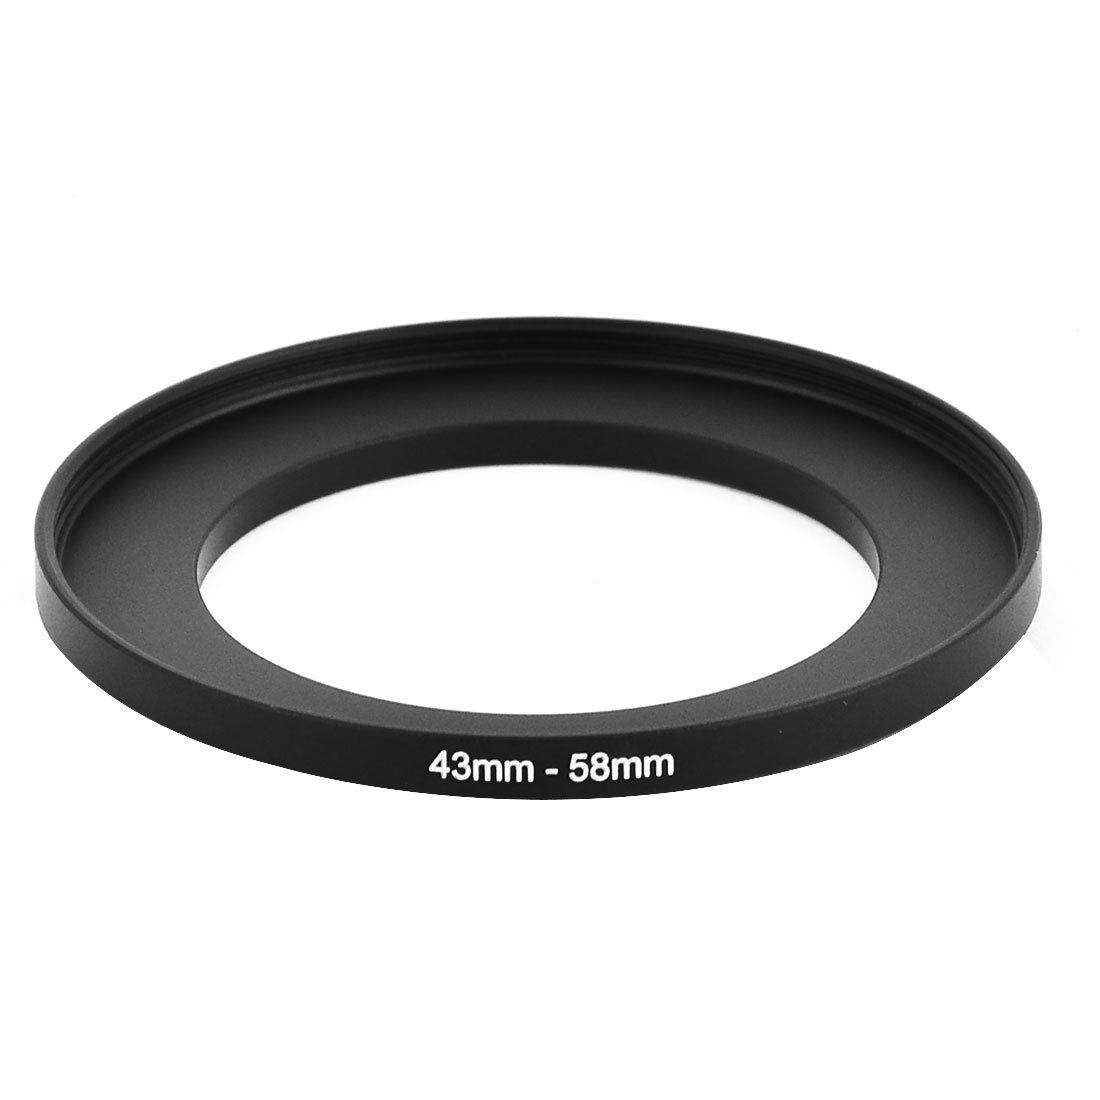 43mm-58mm Camera Lens Filter Step Up Ring Adapter - Black